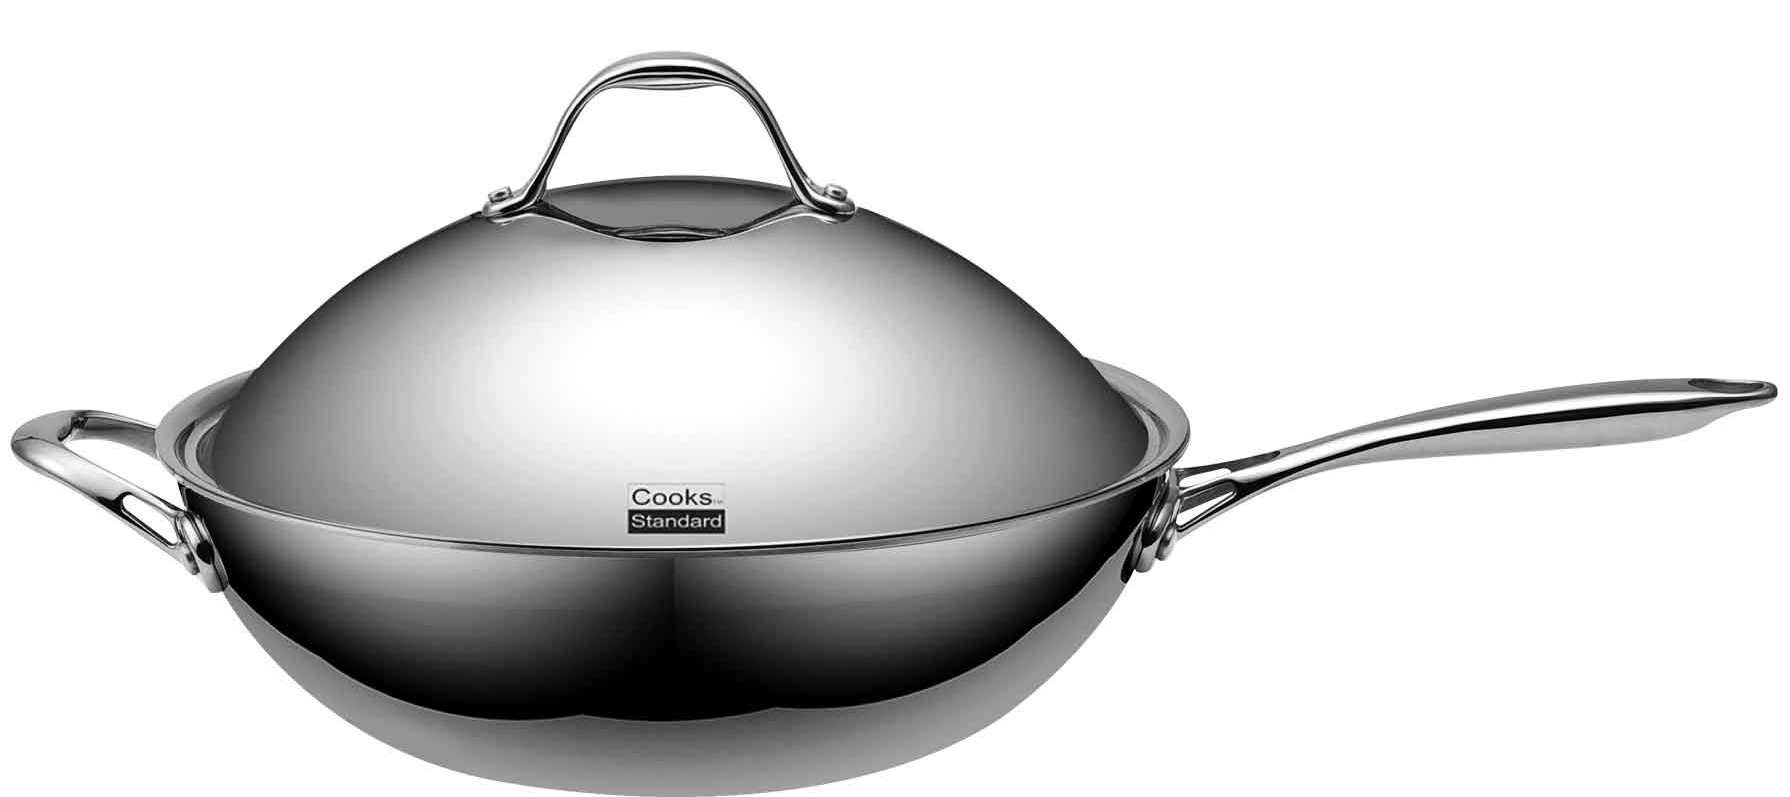 Cooks Standard 13-Inch Multi-Ply Clad Stainless Steel Wok Stir Fry Pan with Dome Lid by Cooks Standard (Image #4)